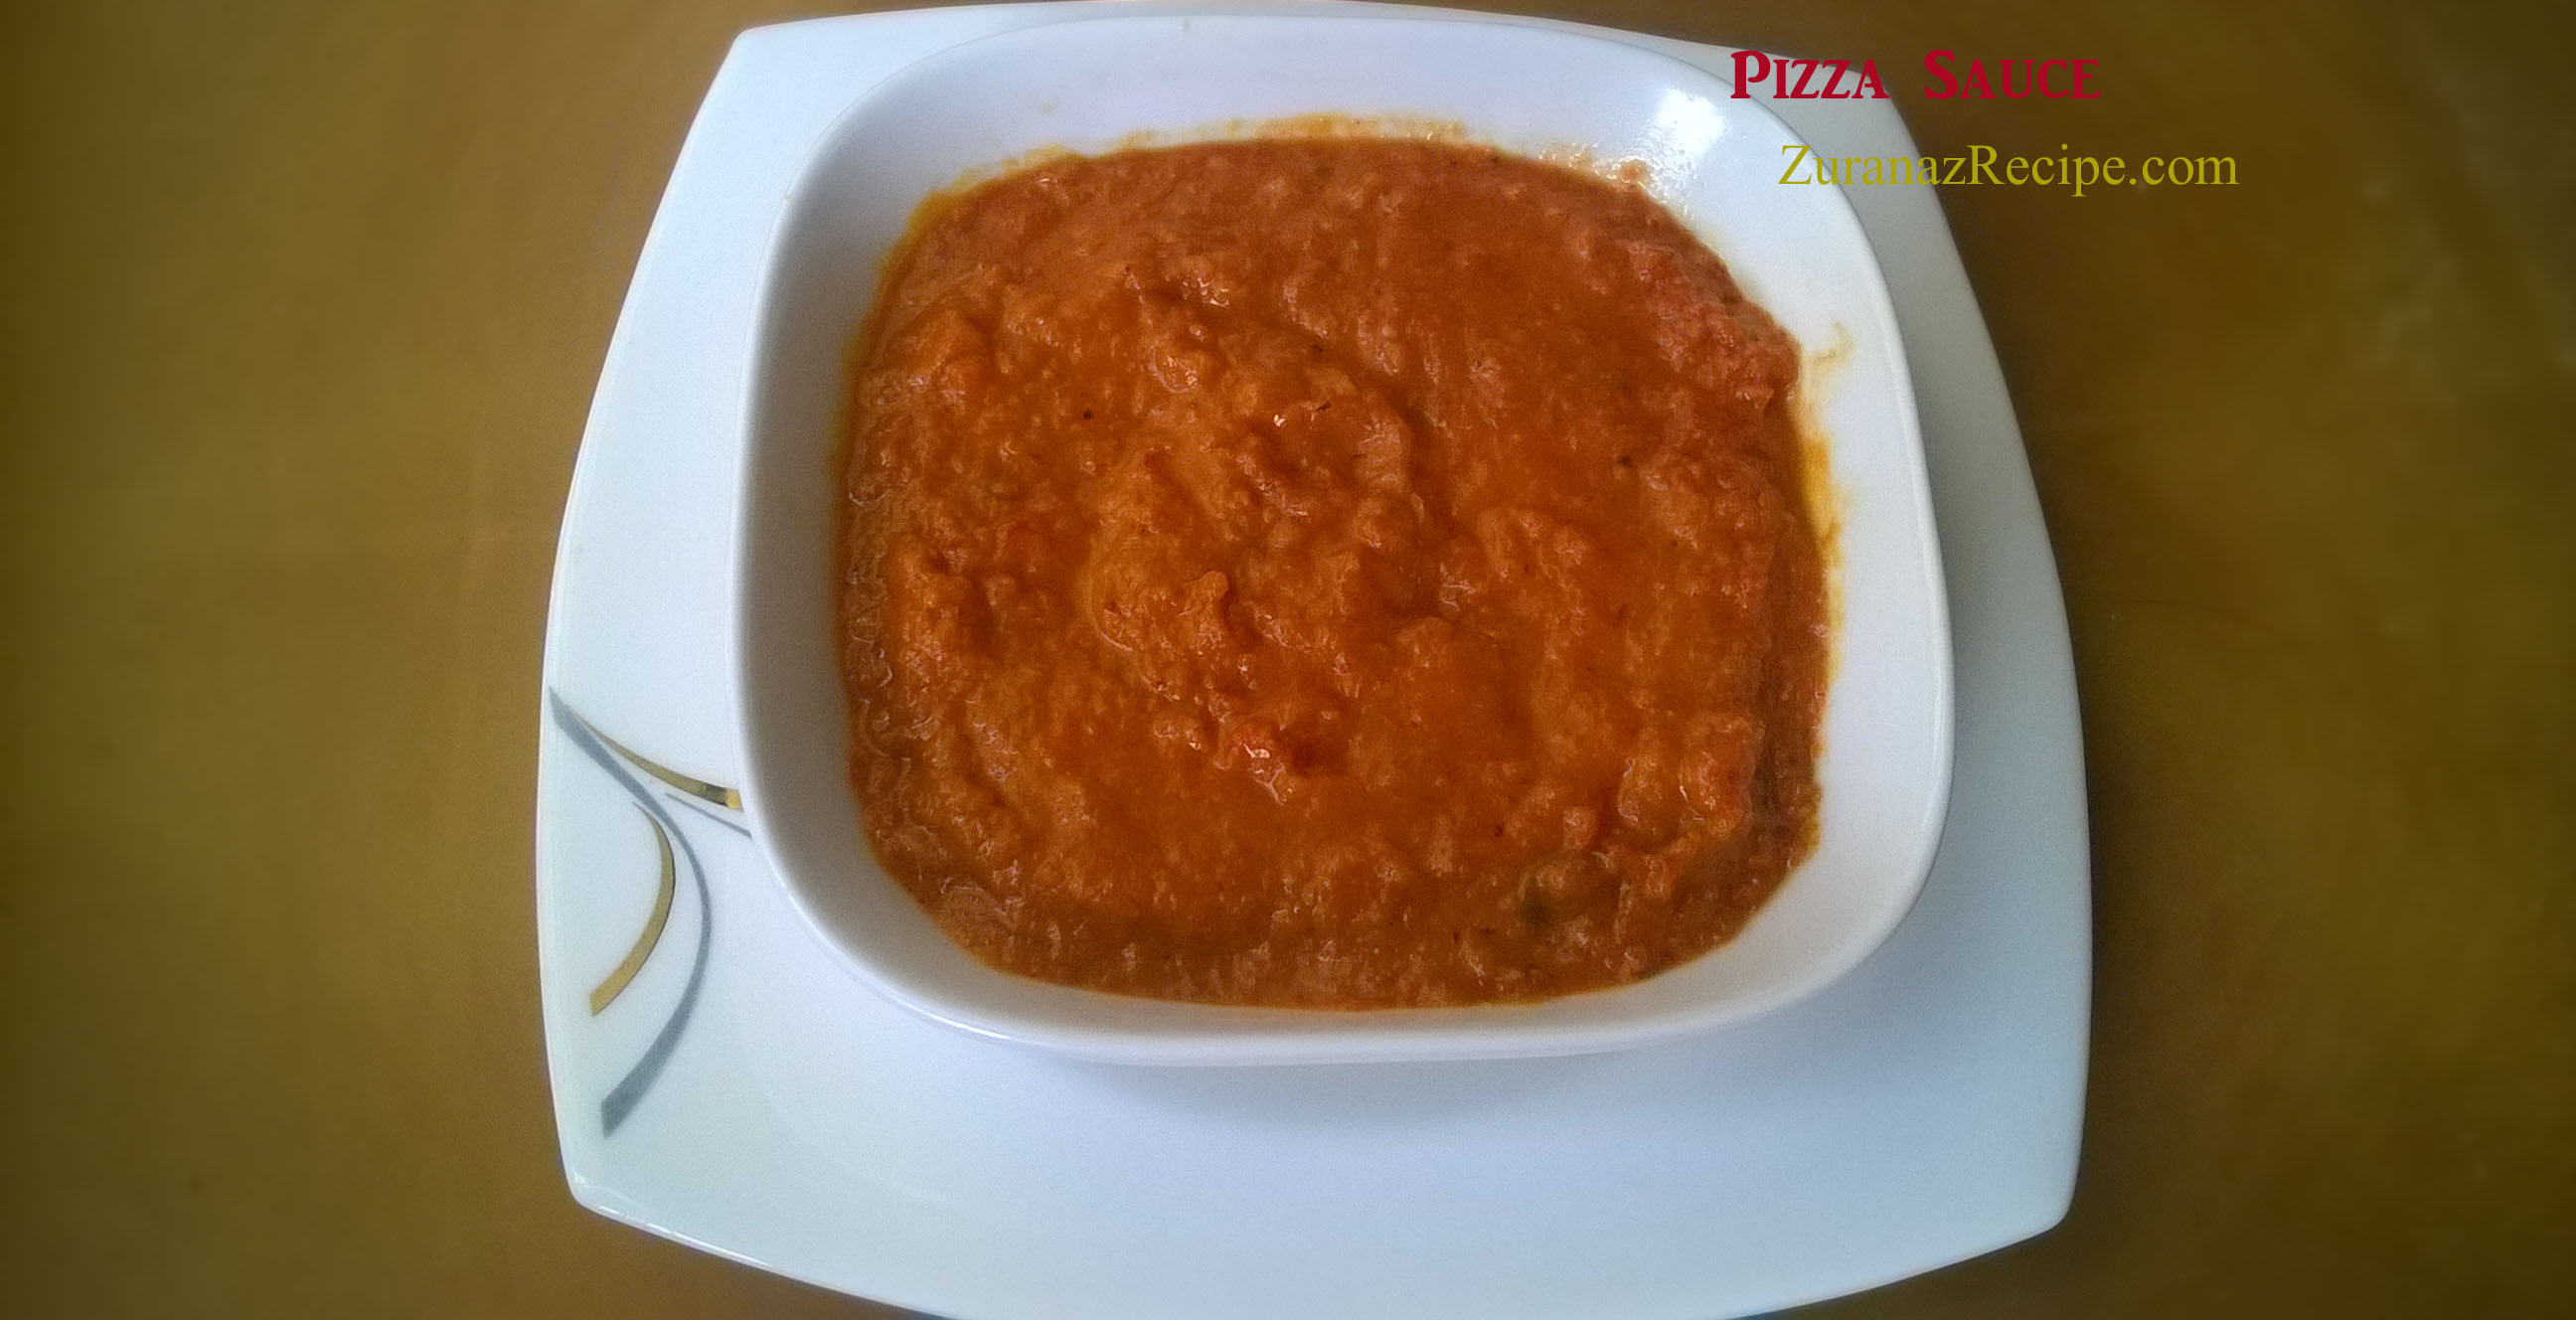 How To Make Pizza Sauce/Easy Homemade Pizza Sauce